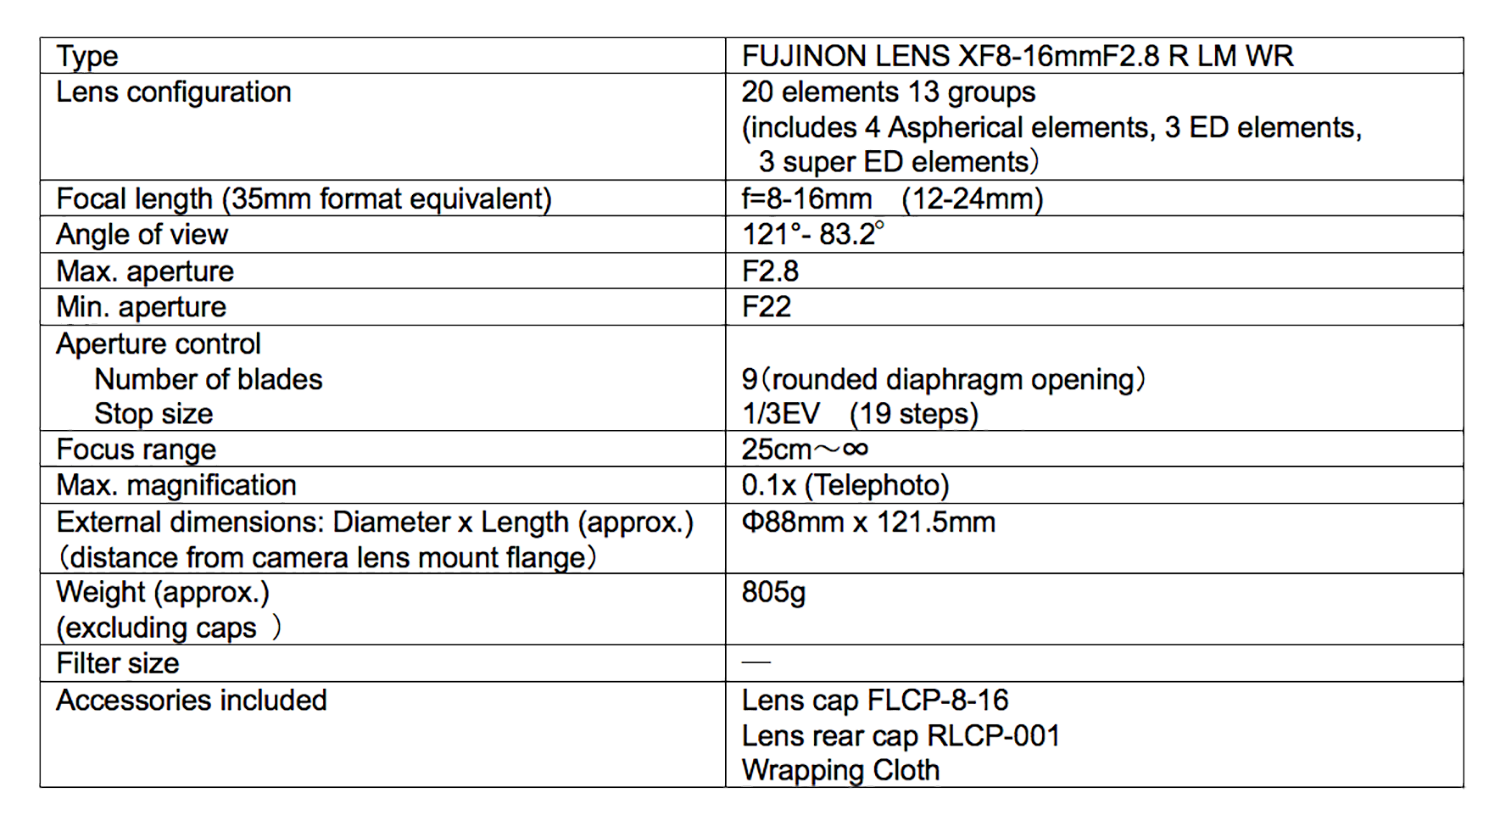 Fujifilm 8-16mm specifications